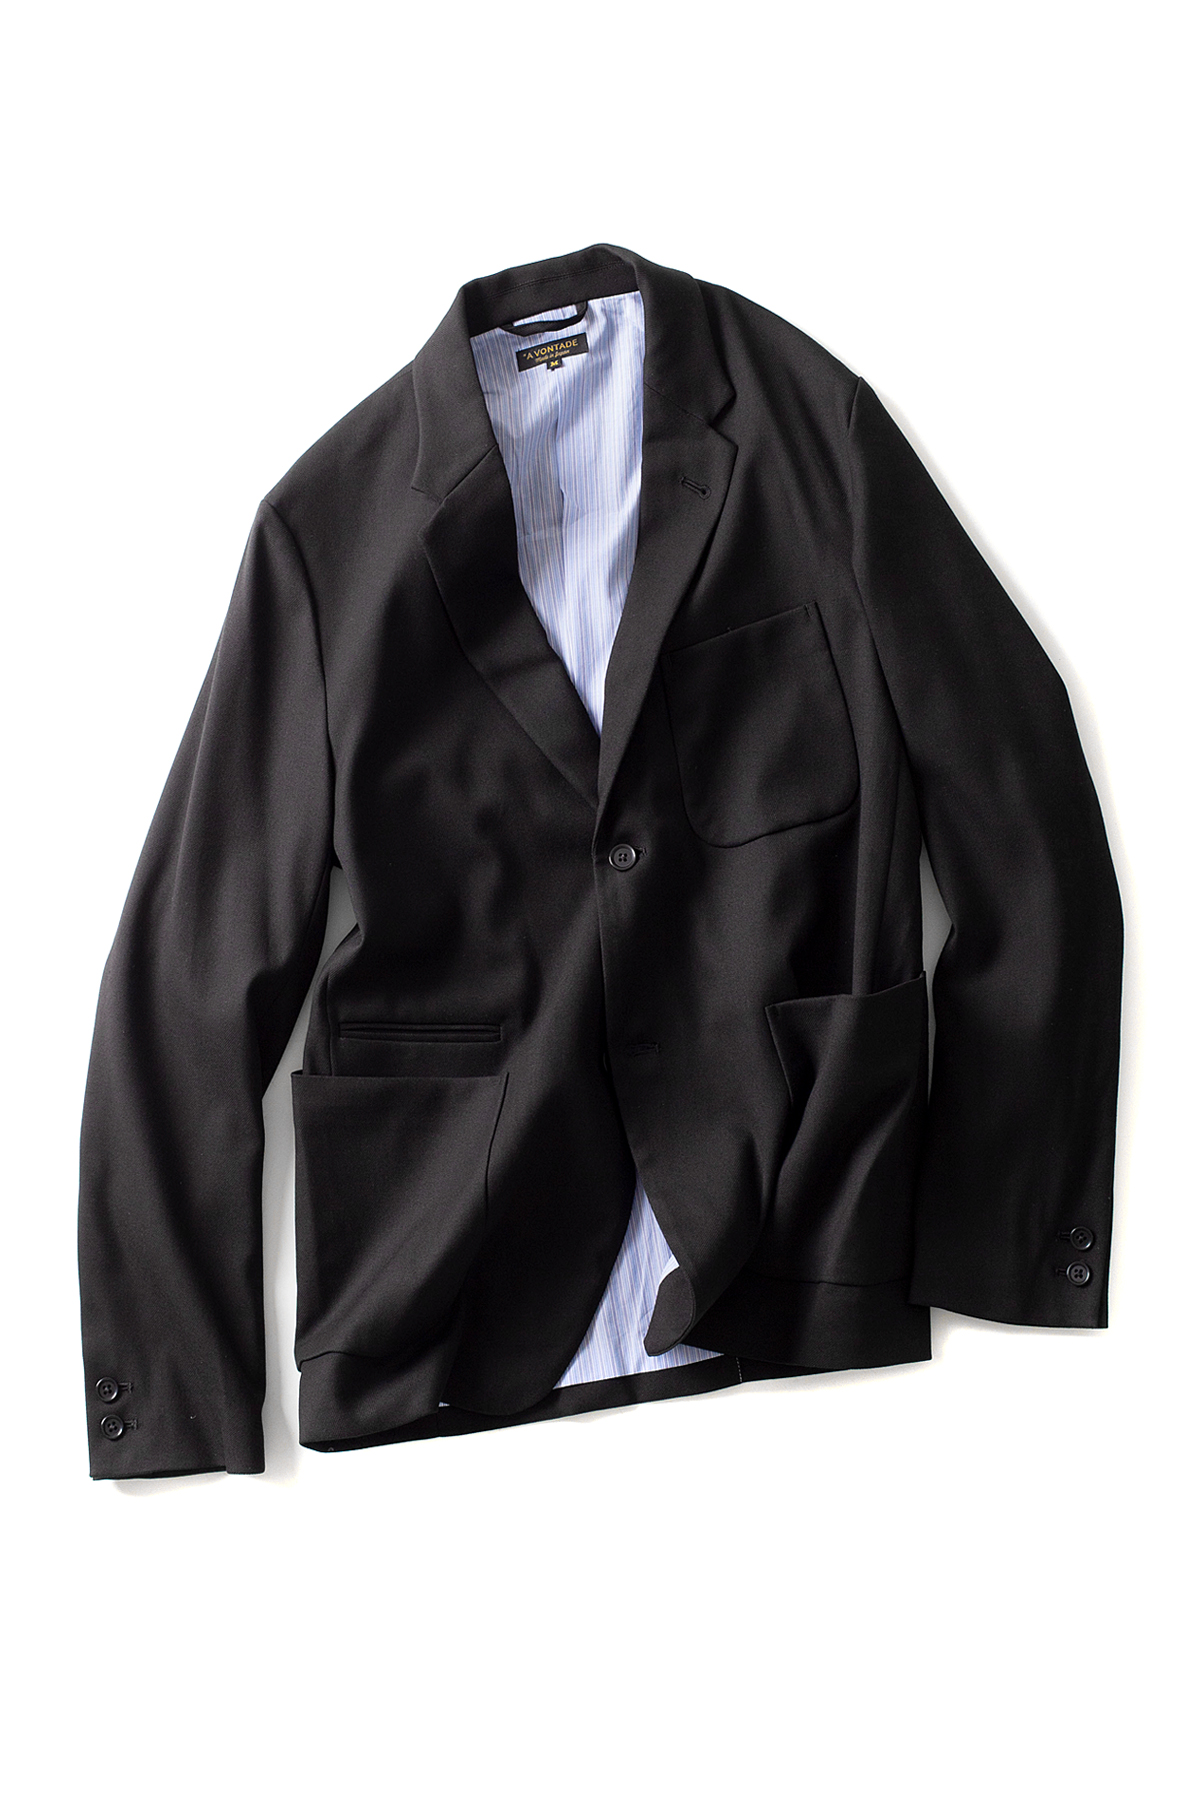 A vontade : Lounge Jacket (Black)